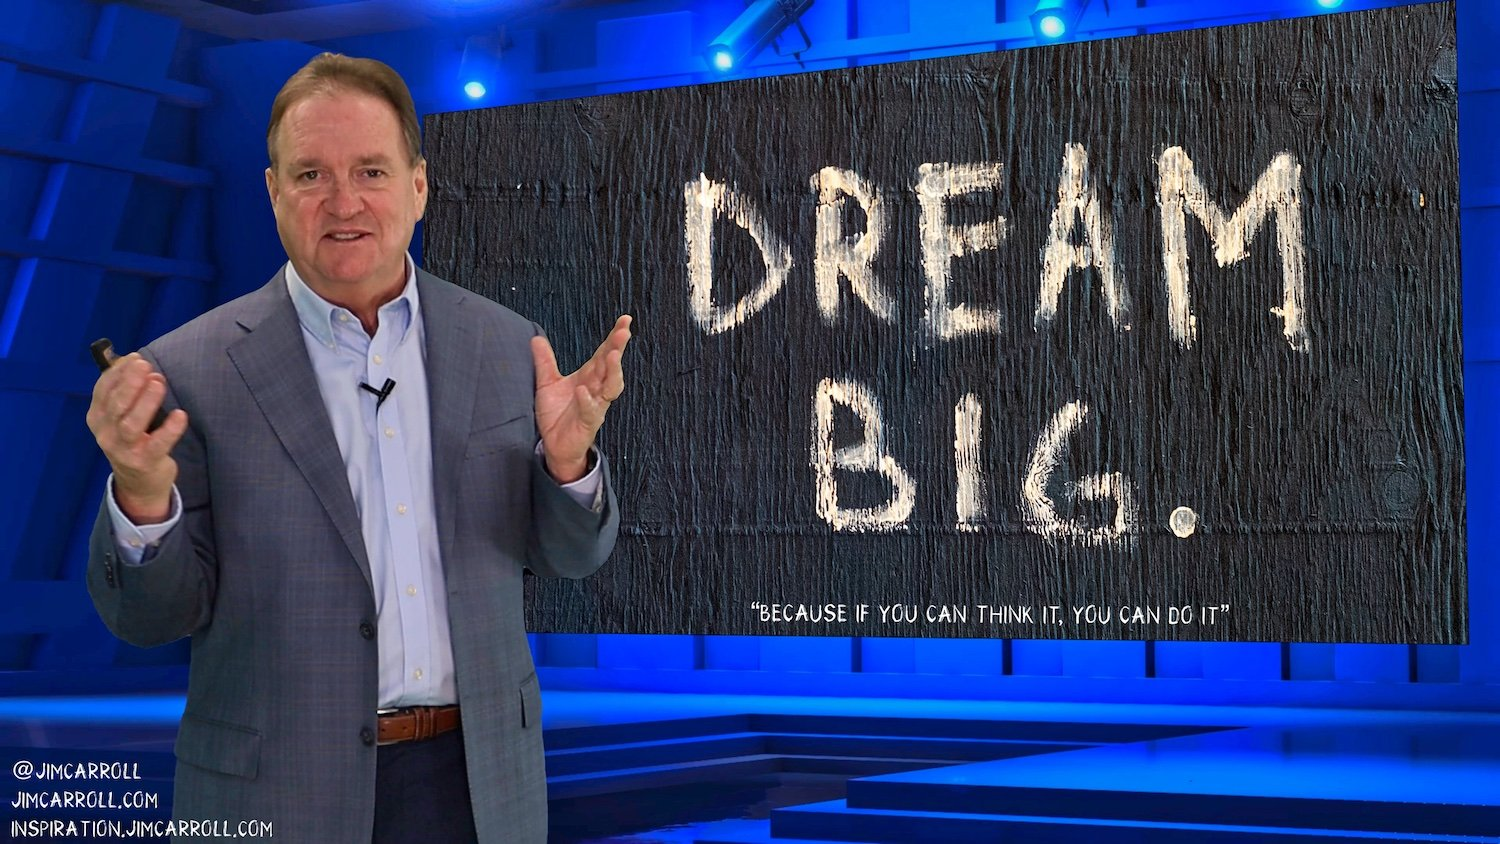 """Daily Inspiration: """"Dream BIG: Because if you can think it, you can do it!"""""""